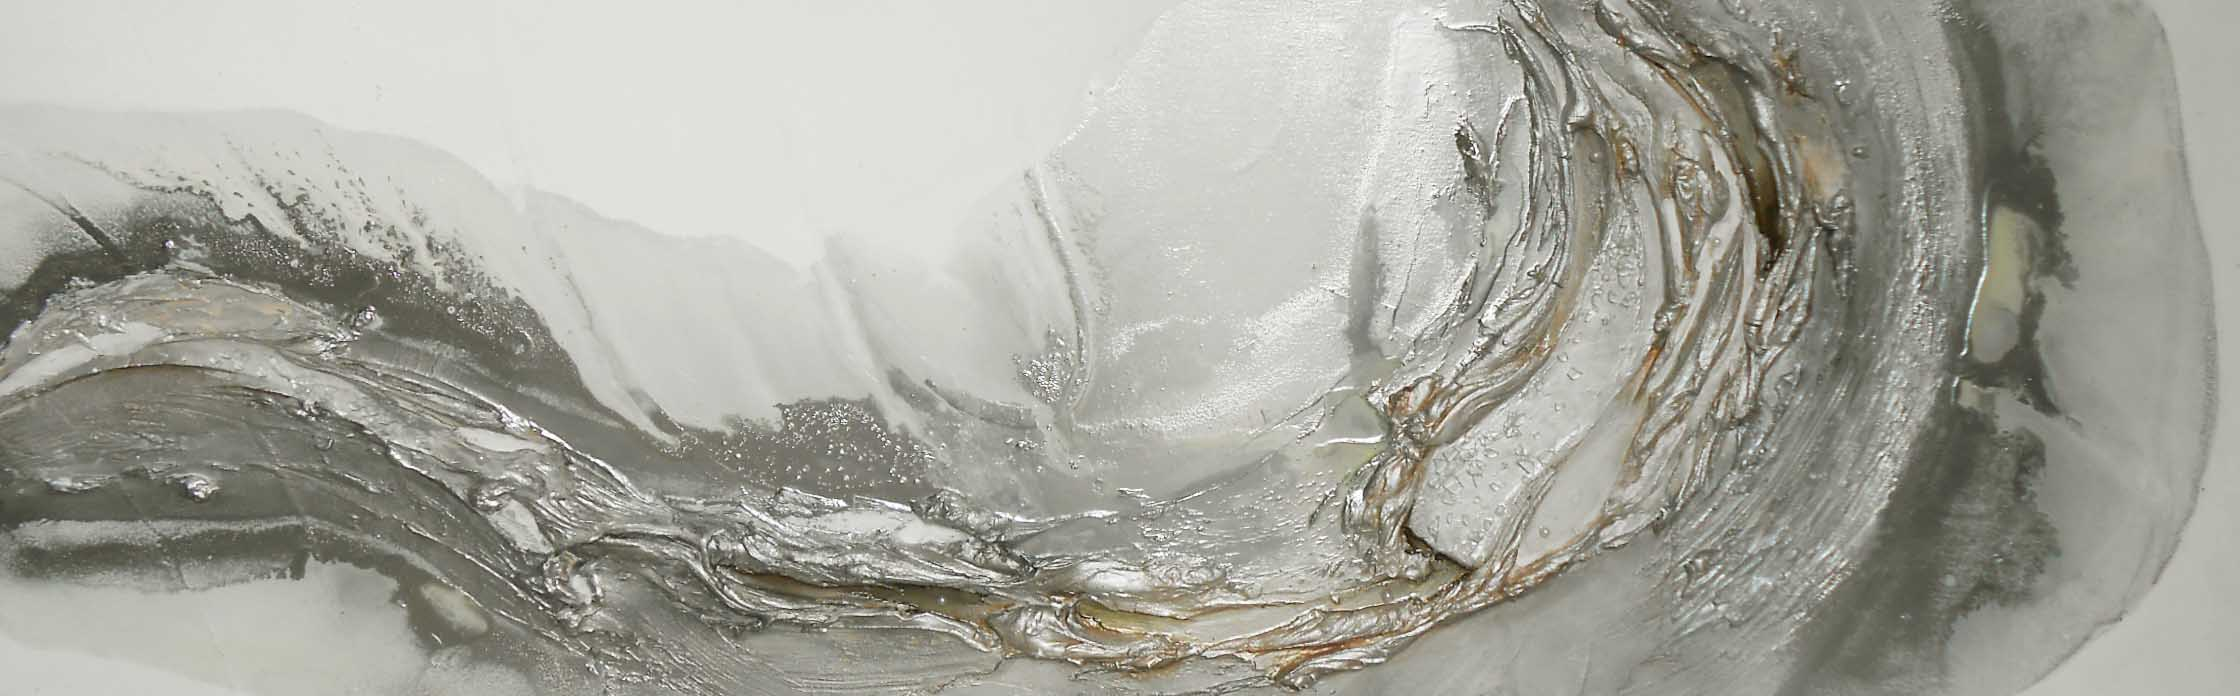 Vicky Sanders Oyster Series - White Oyster #2